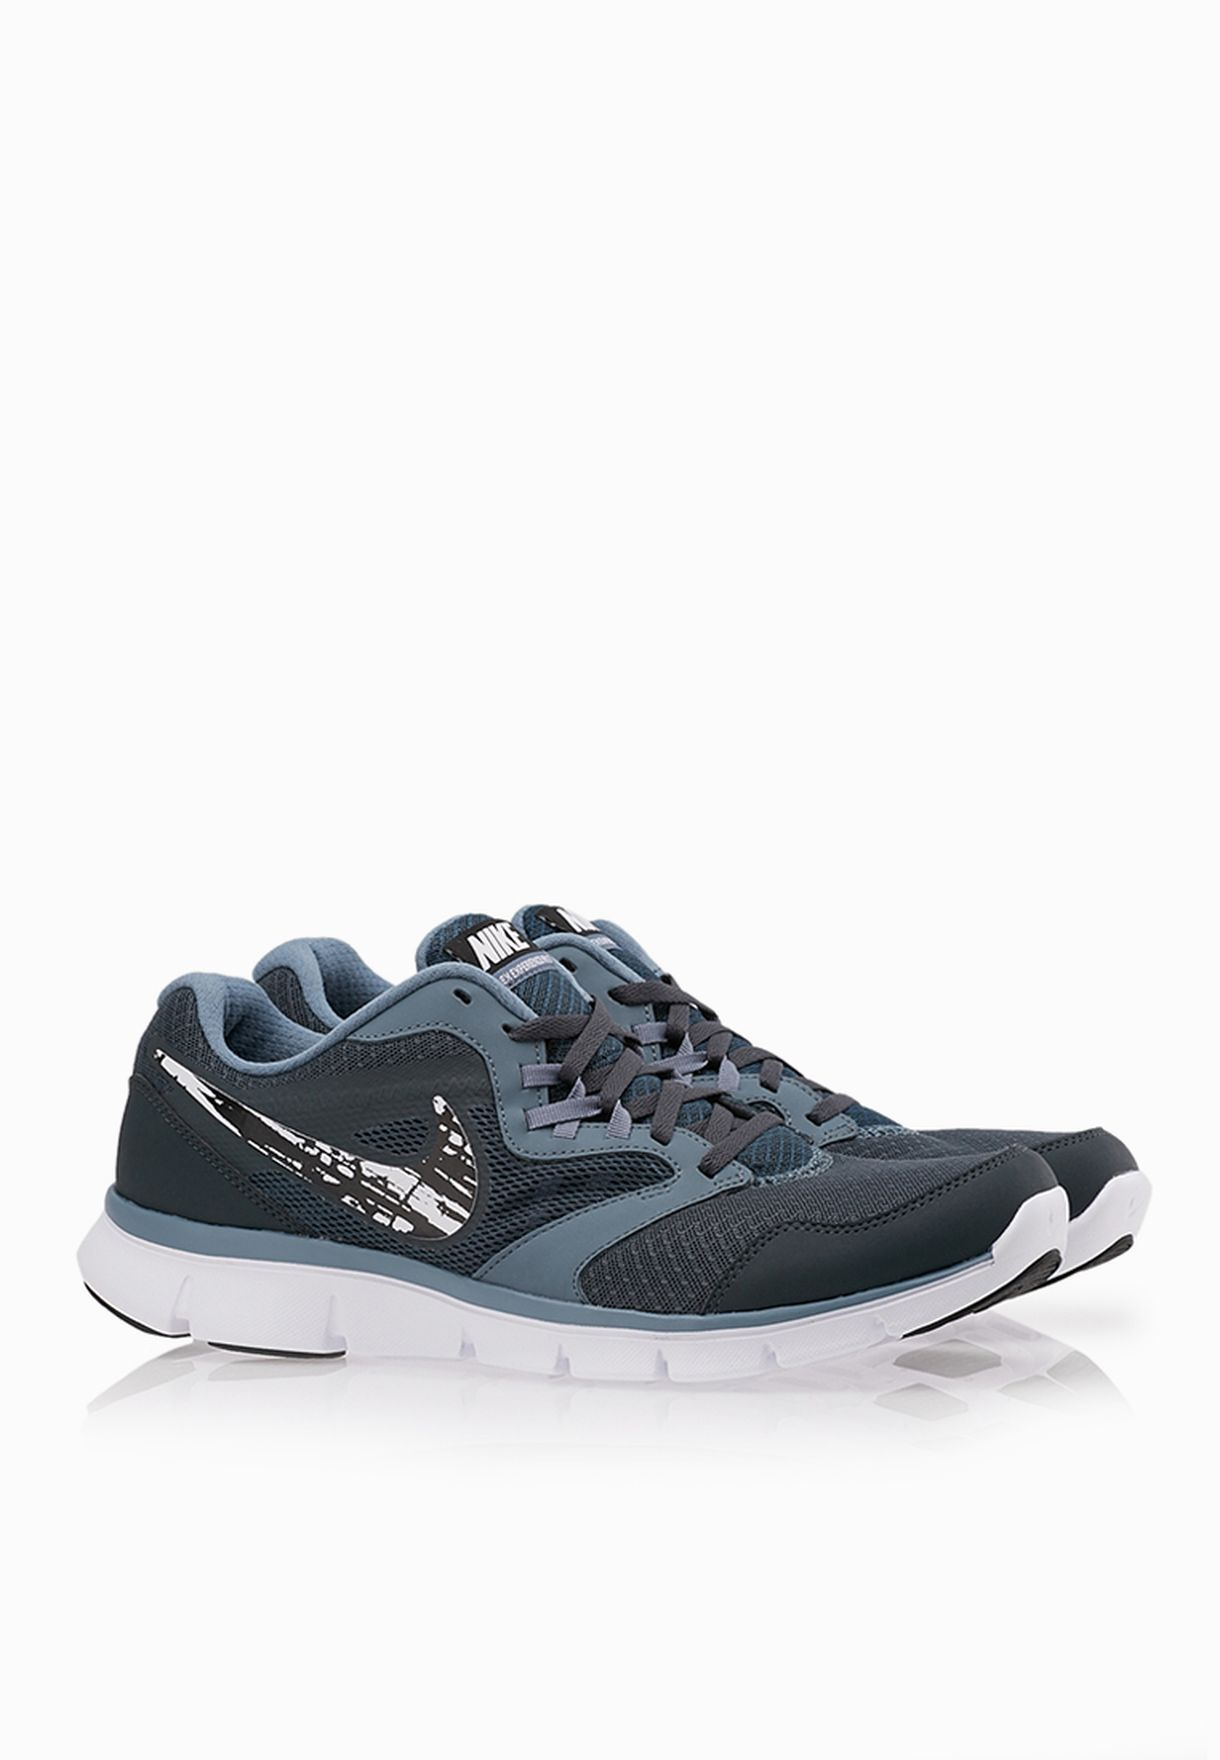 b51d6963fa9 Shop Nike grey Flex Experience RN 3 MSL 652852-014 for Men in ...